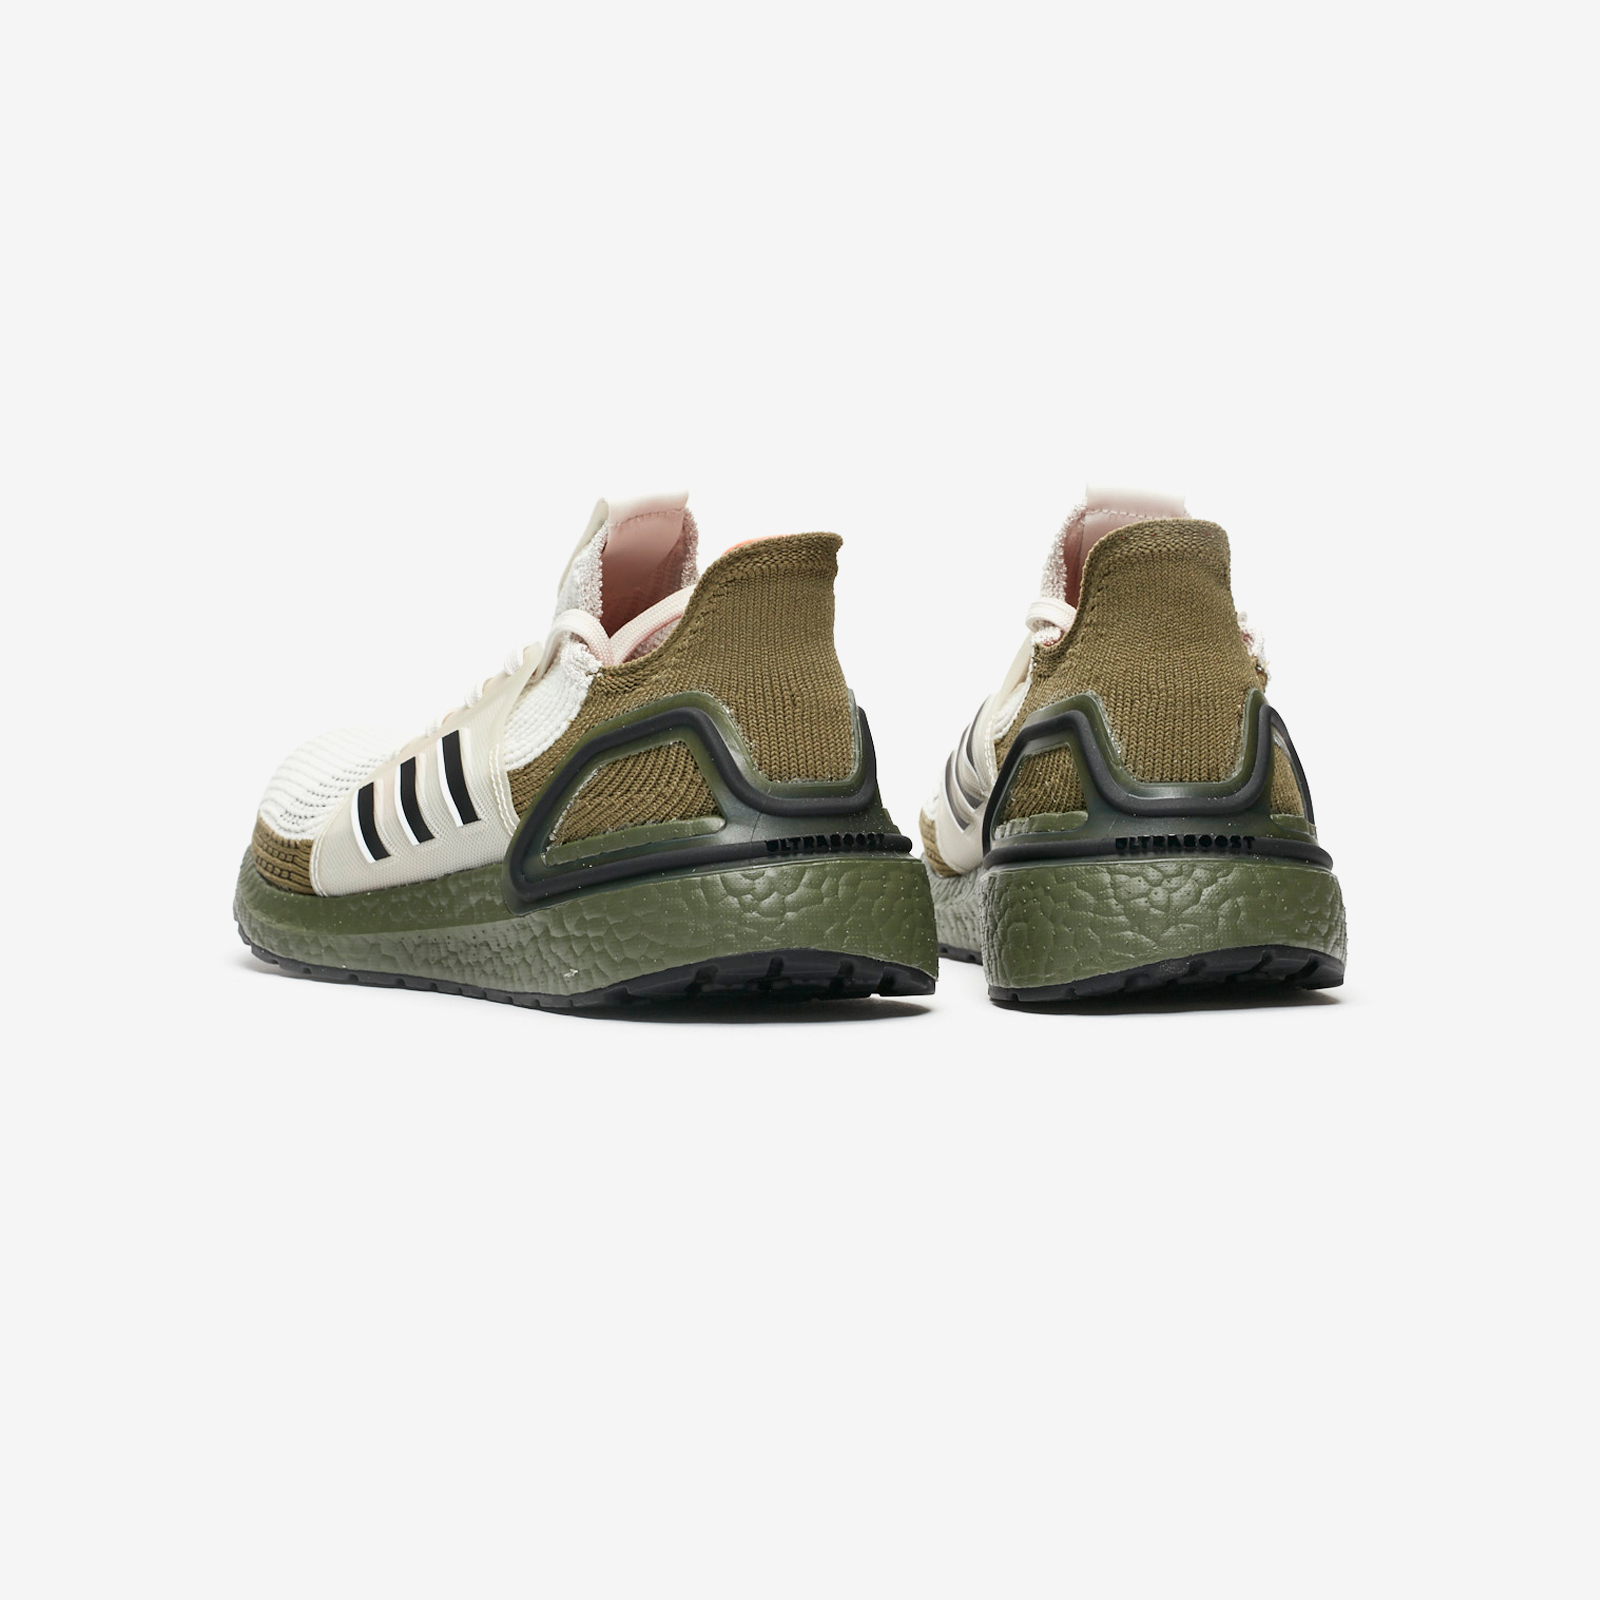 adidas Ultra Boost 19 Olive Beige G27510